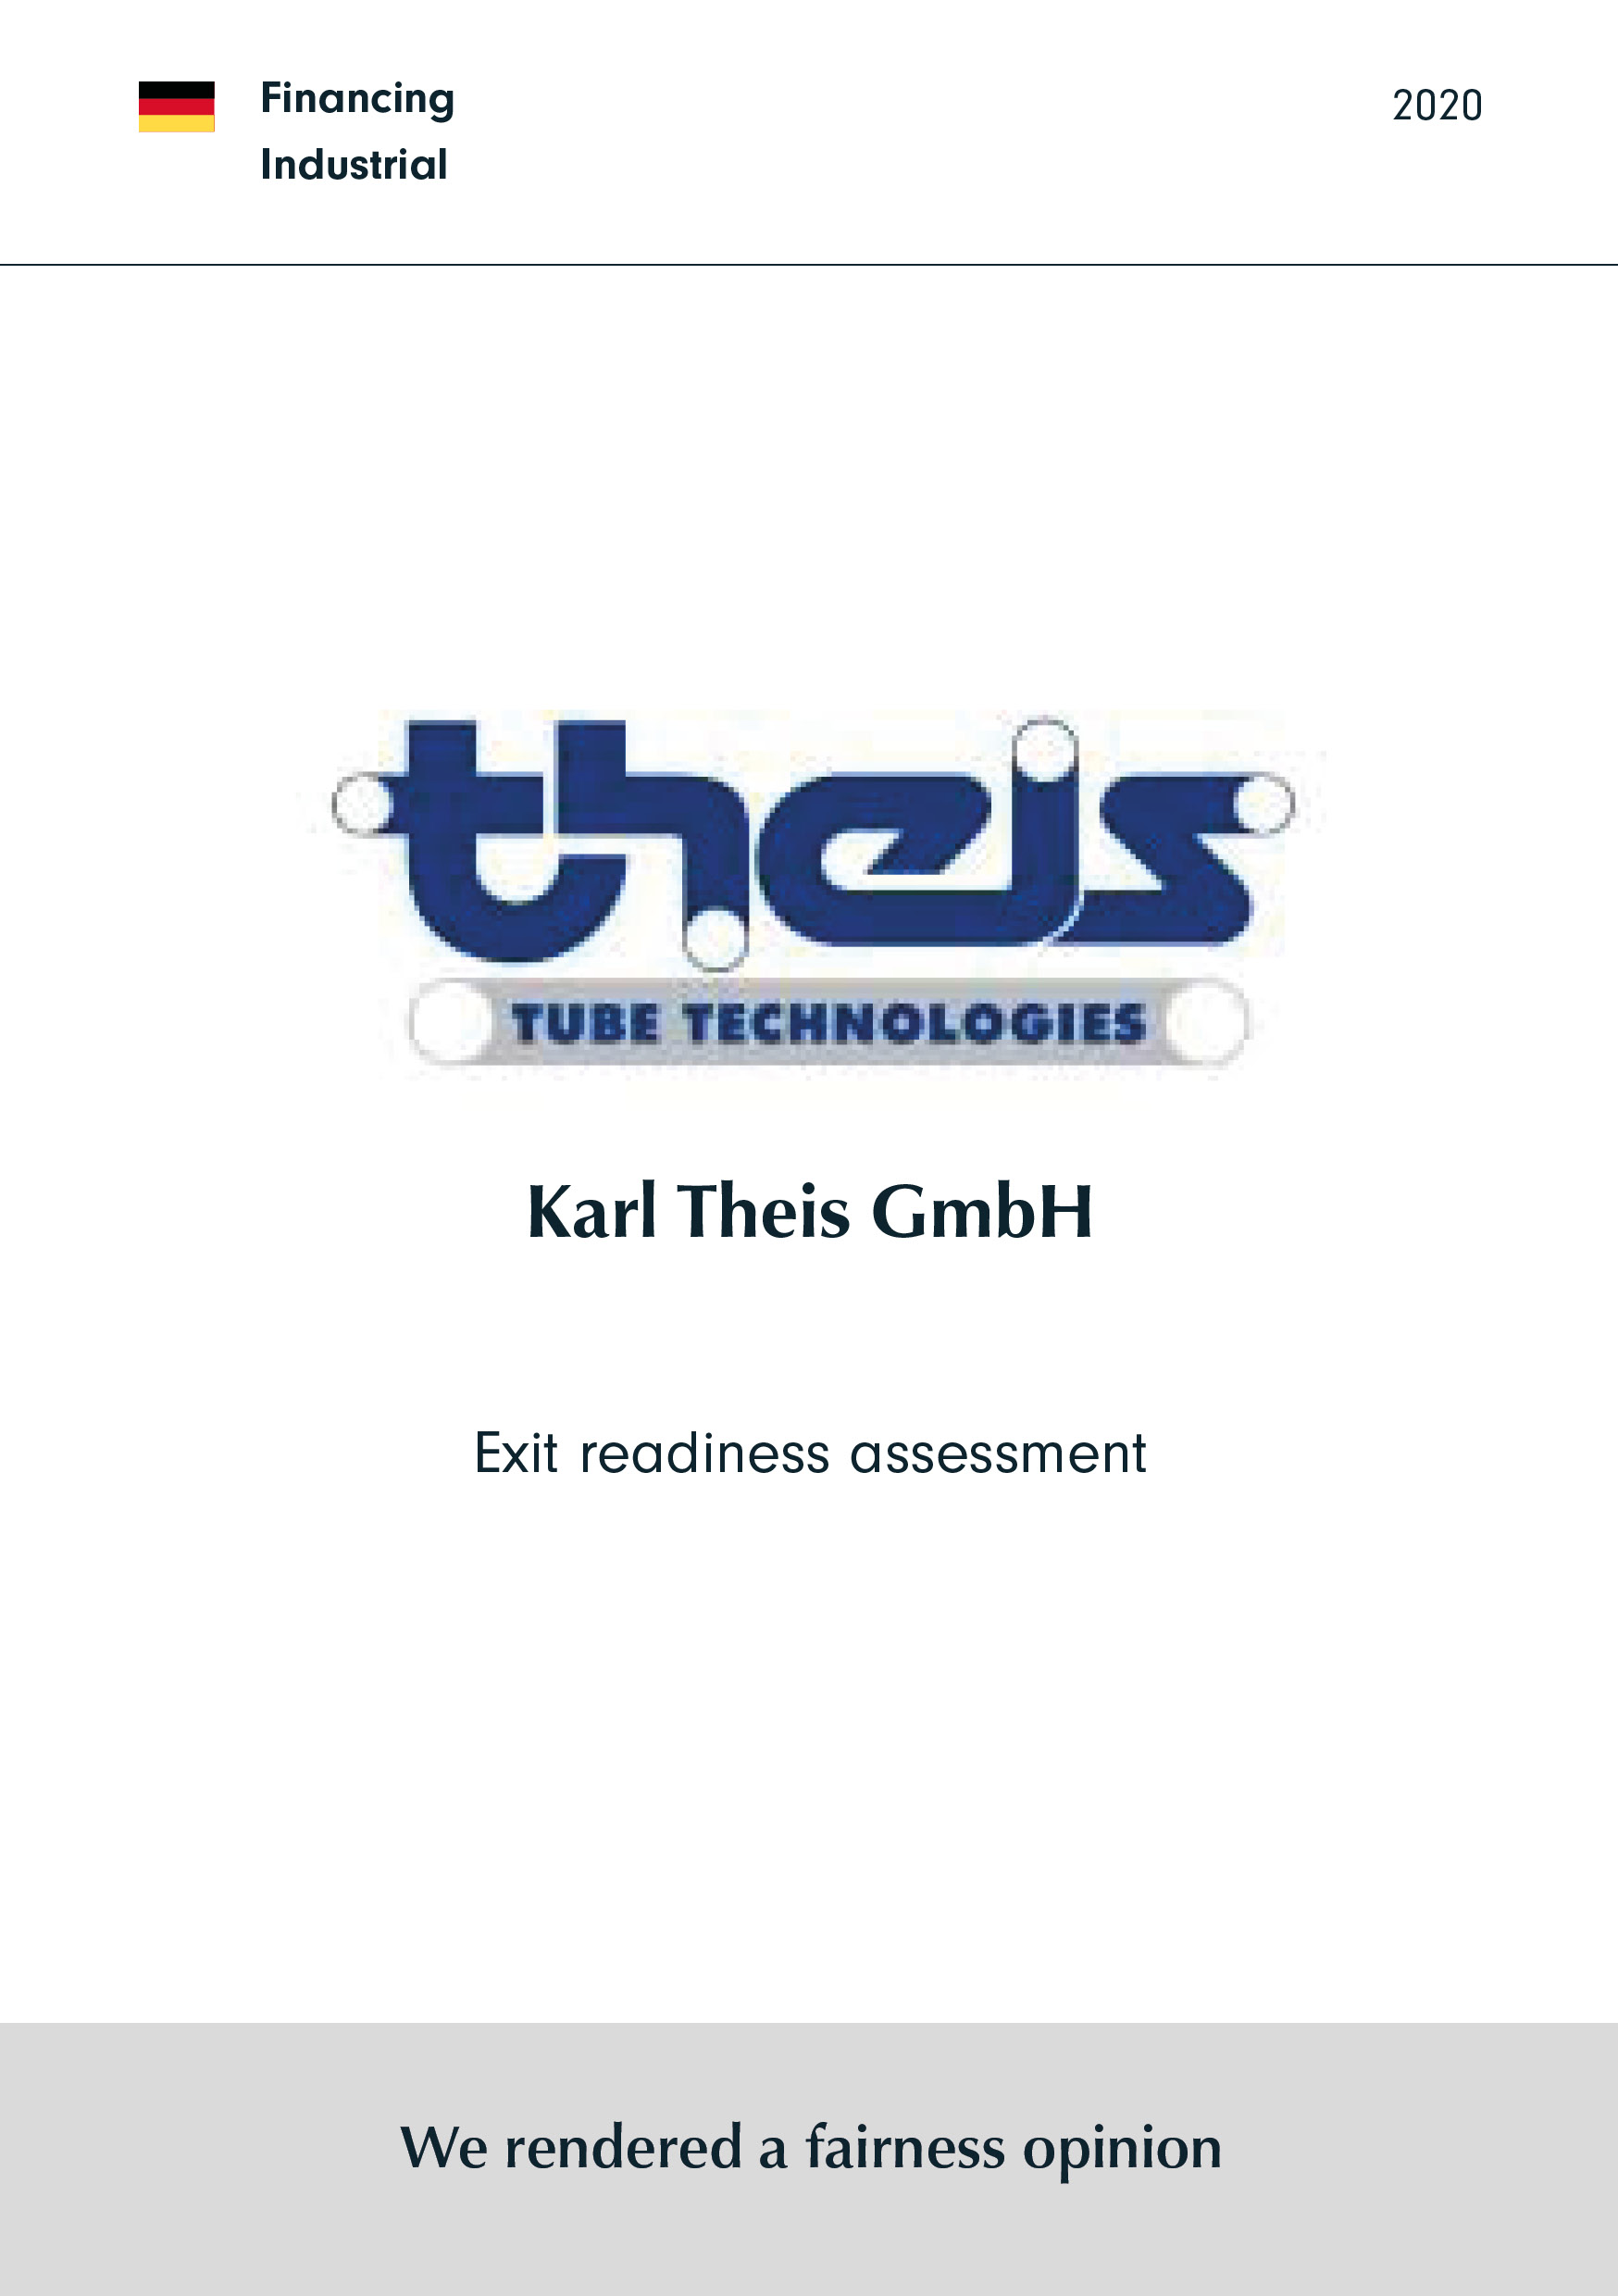 Karl Theis GmbH | Exit readiness assessment